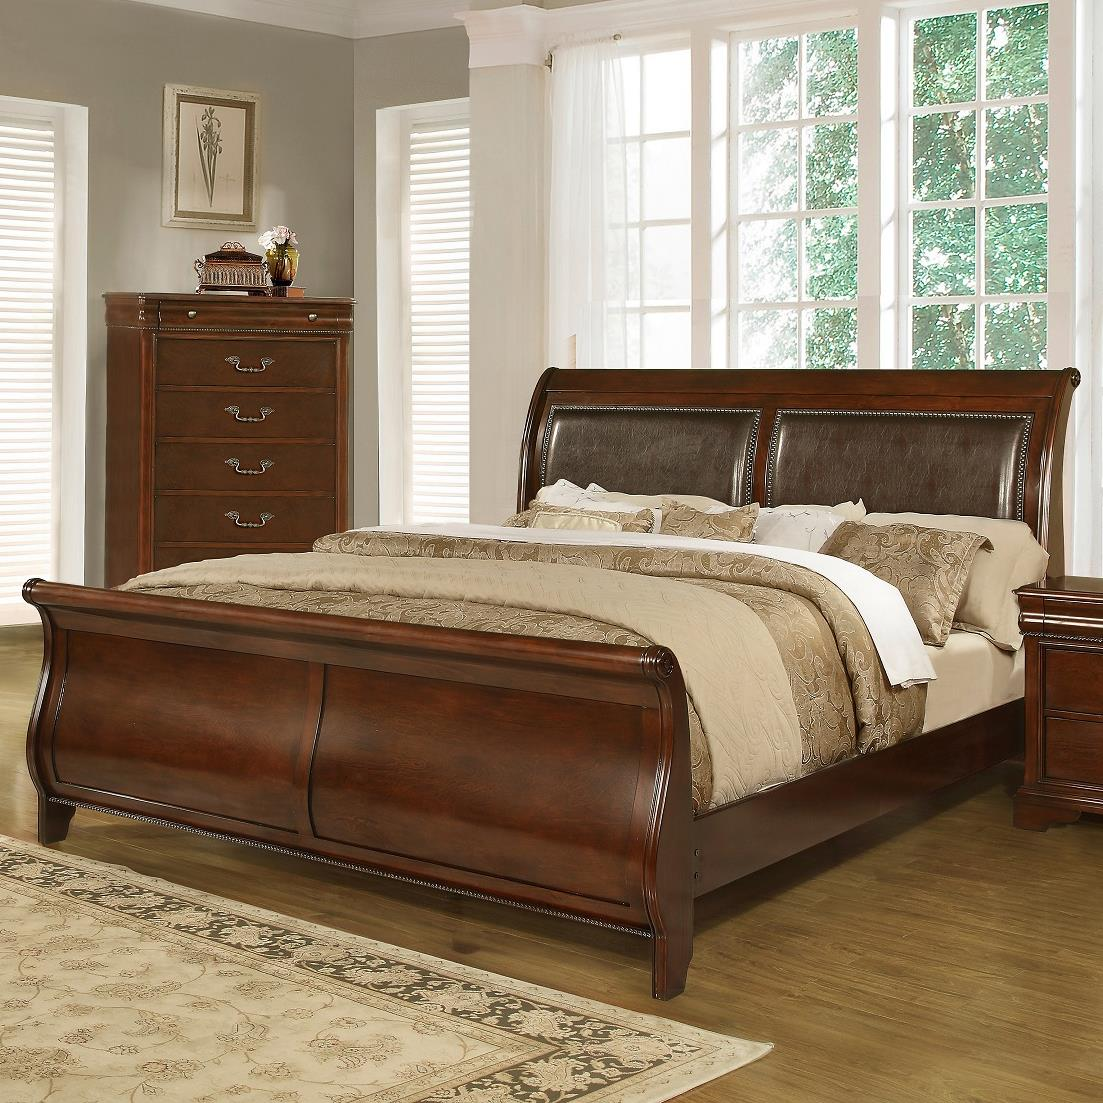 lifestyle c4116a traditional queen sleigh bed furniture fair north carolina sleigh bed